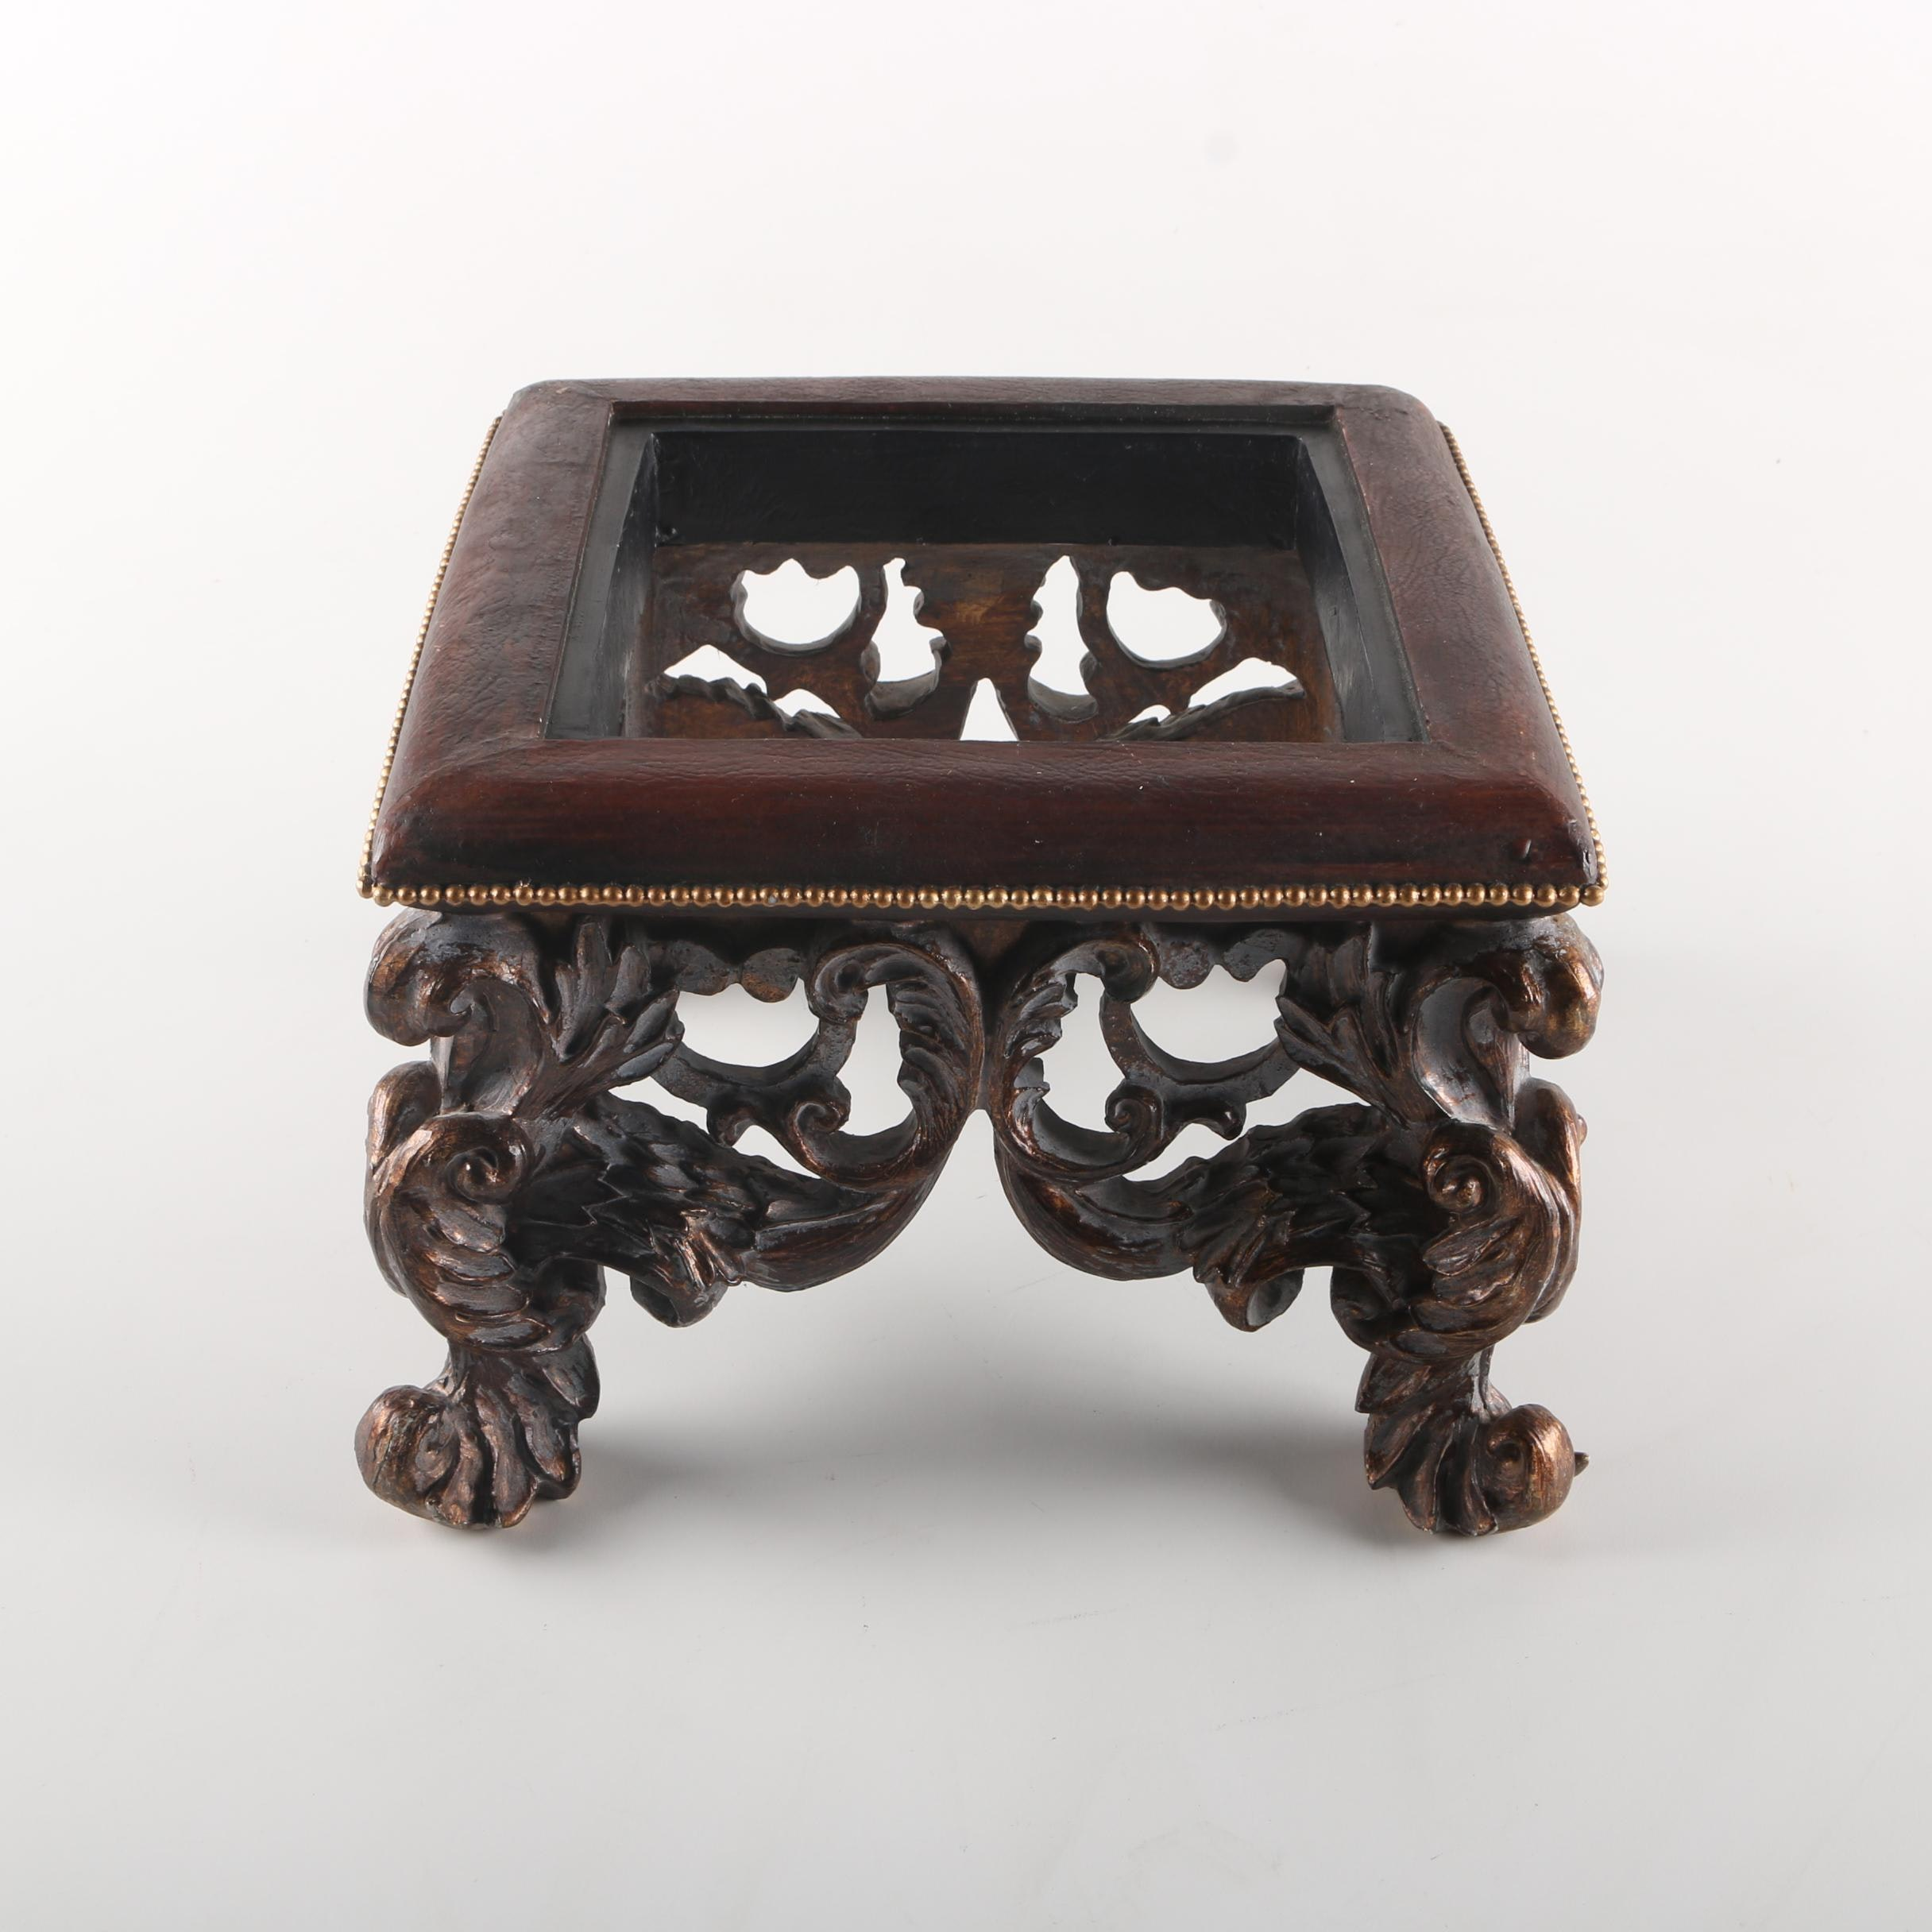 Small Ornate Wooden Stool